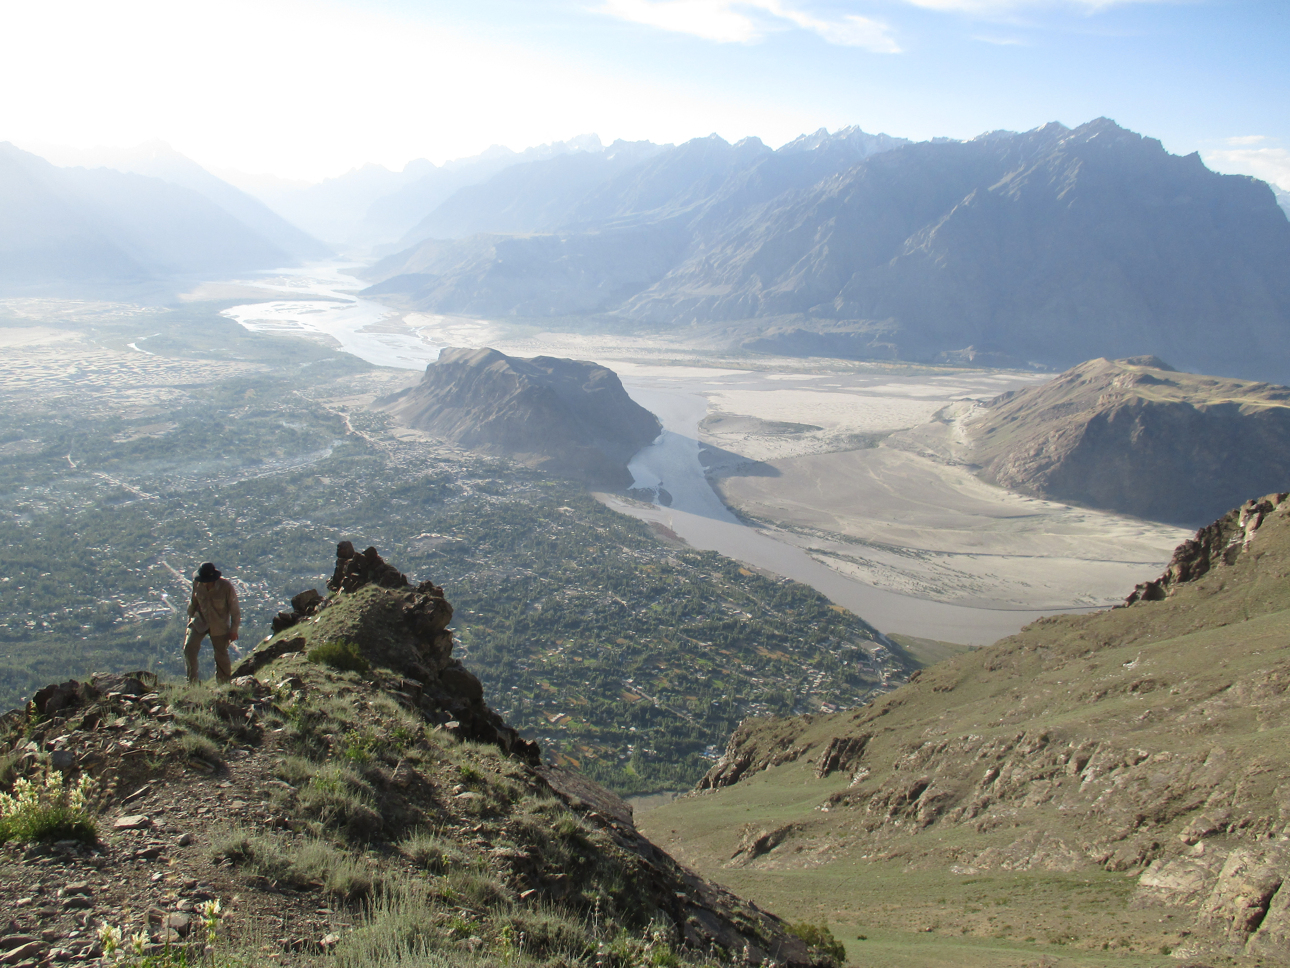 Looking out over Skardu